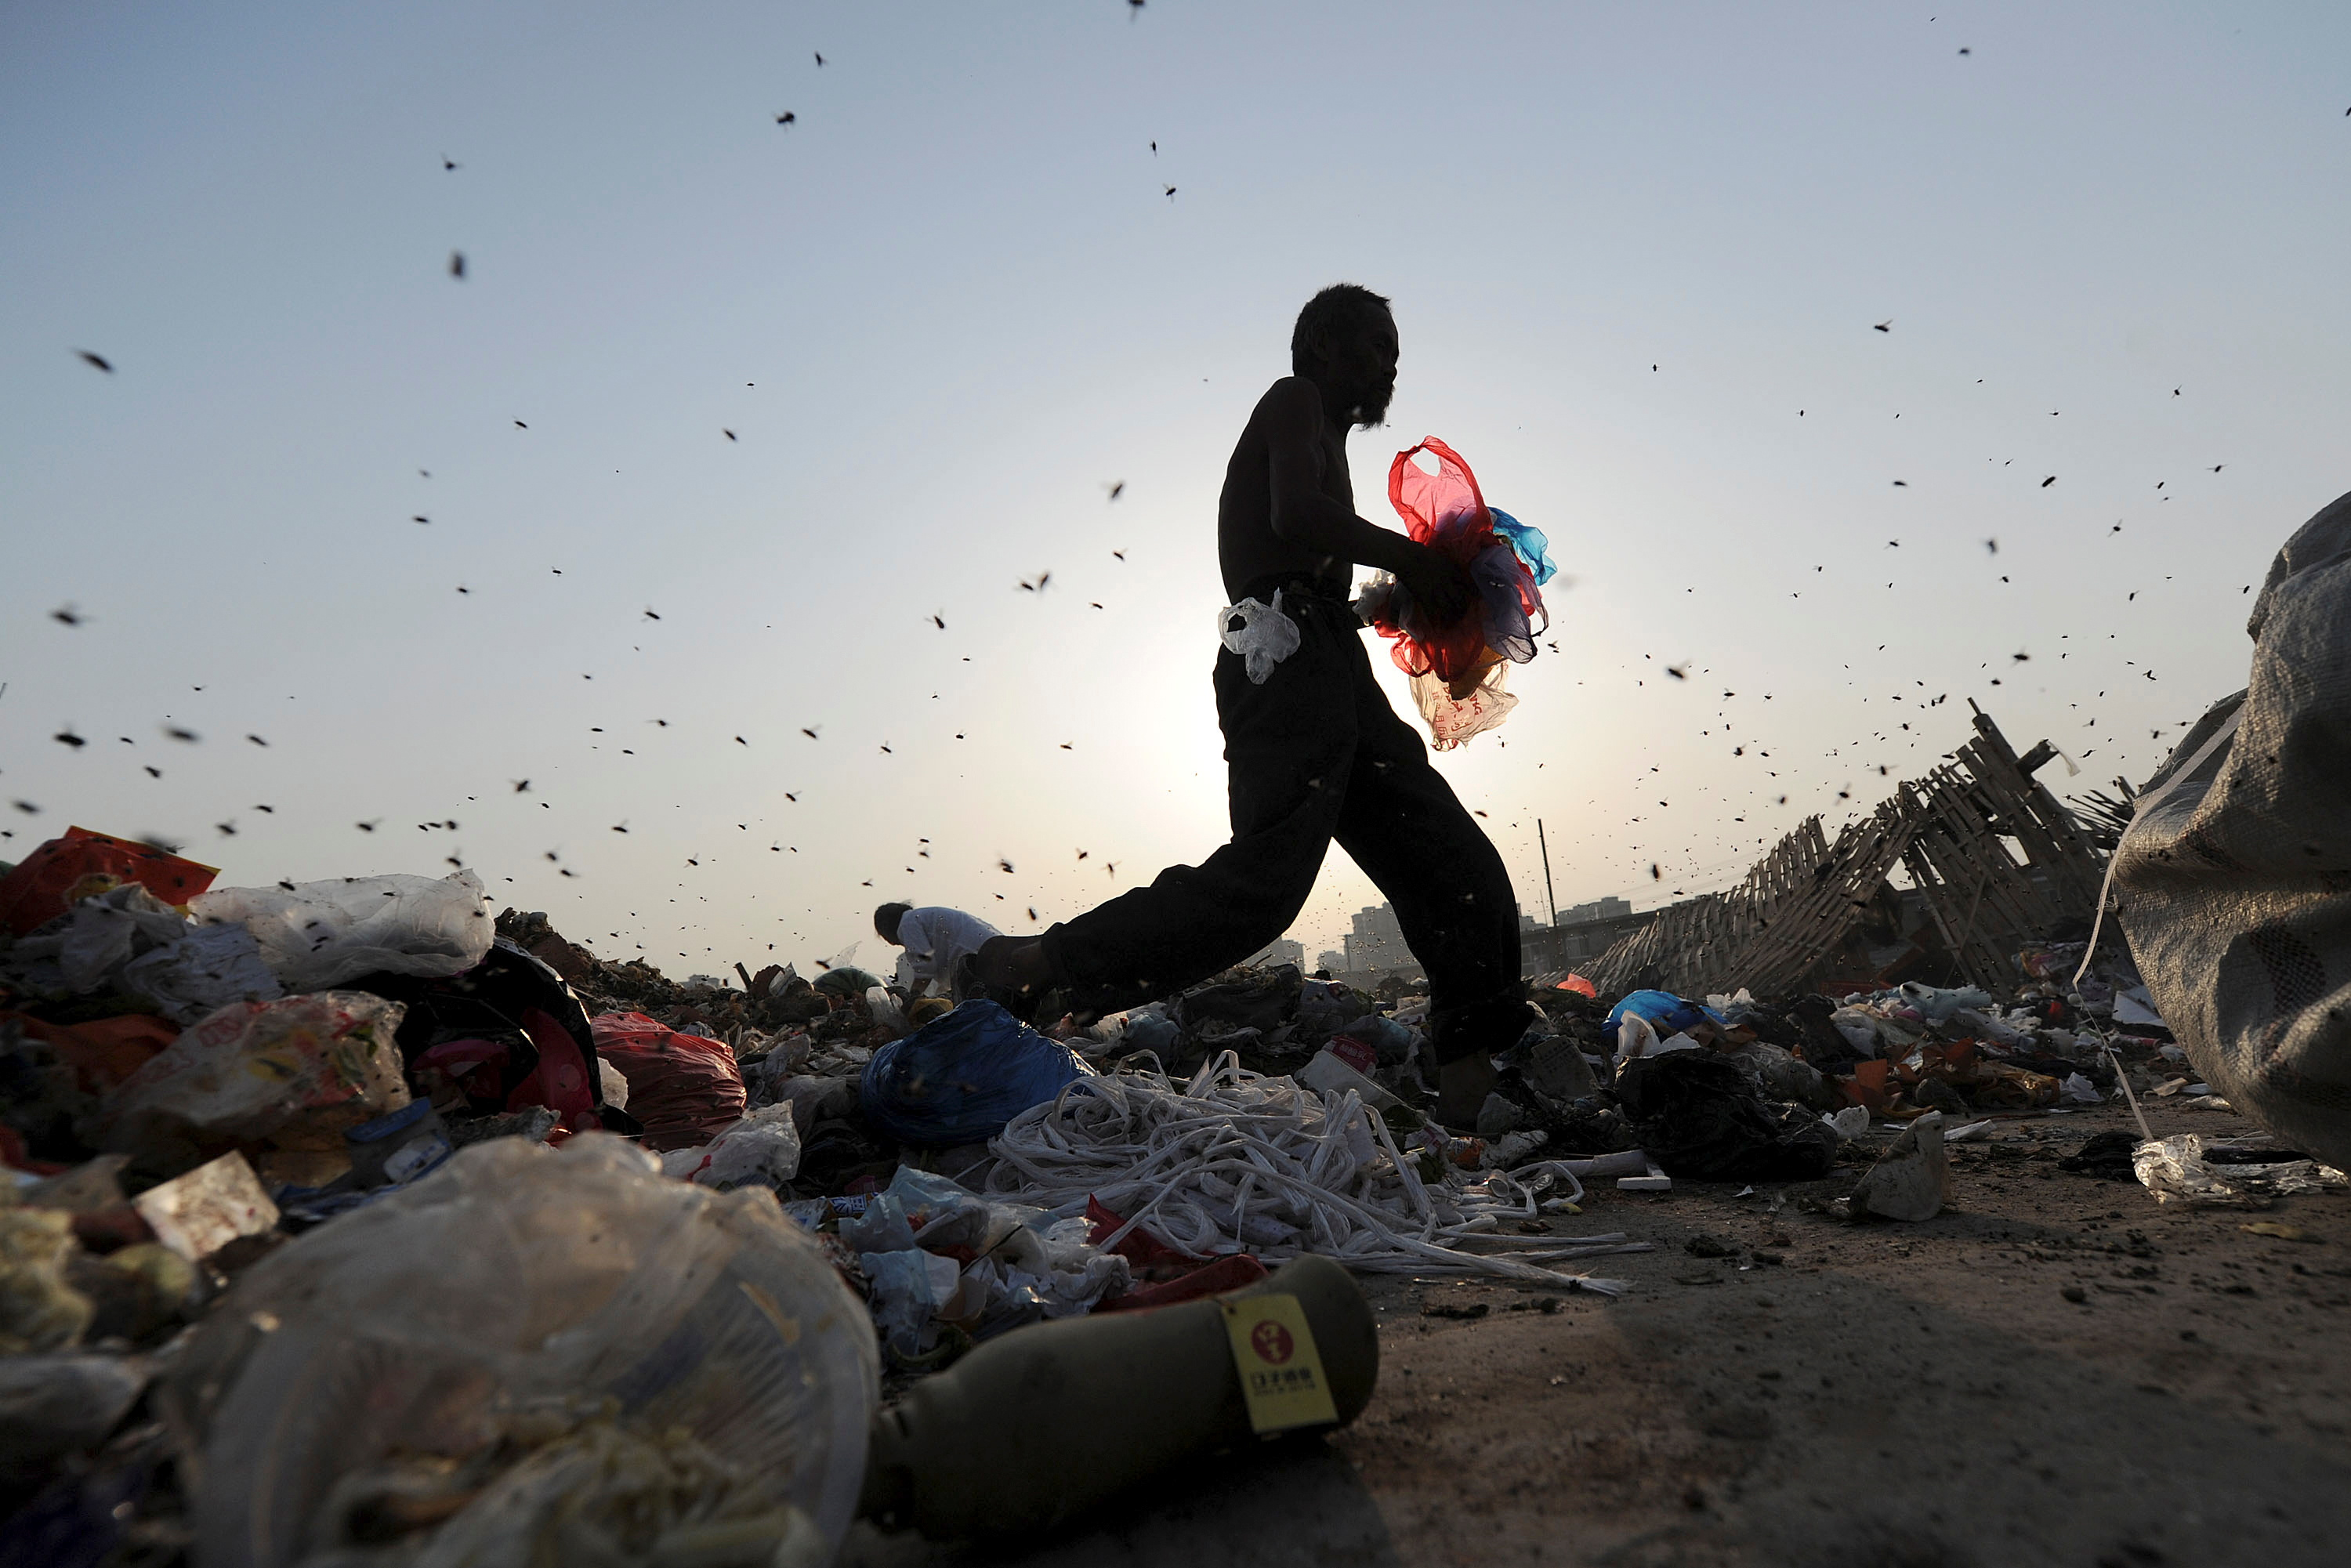 Insects fly around labourers sorting and collecting rubbish for recycling at a dump in Hefei, Anhui province, May 18, 2011. REUTERS/Stringer/File Photo